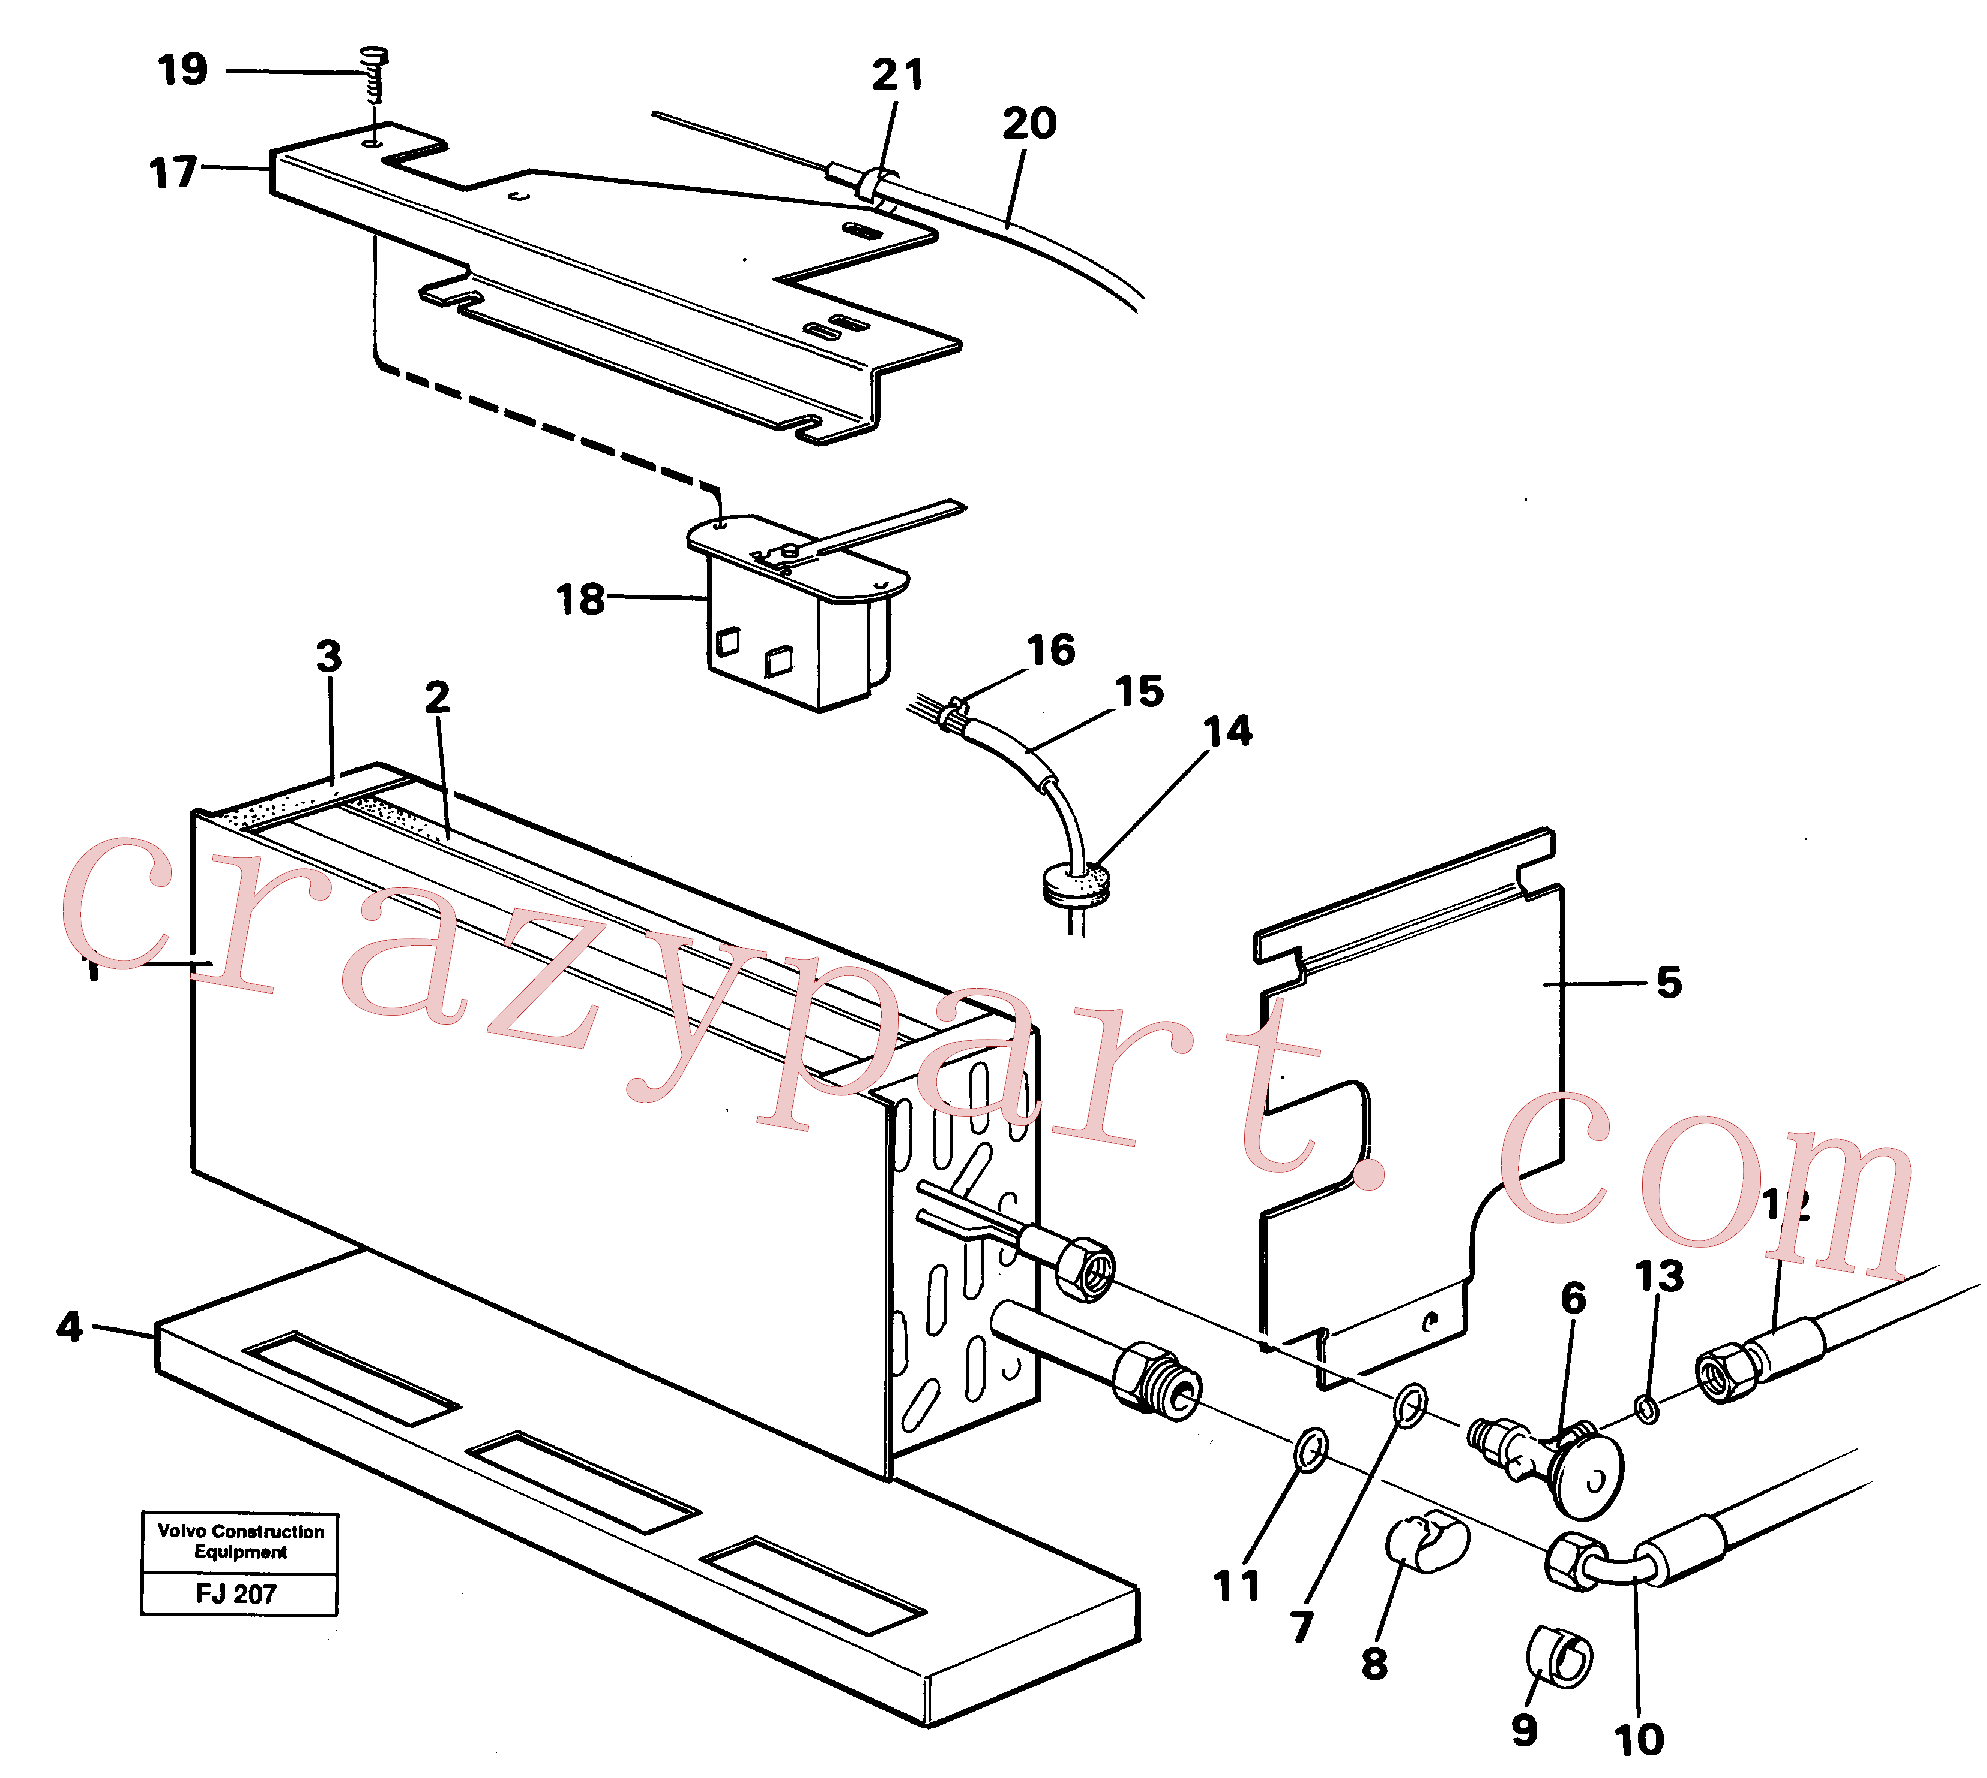 VOE14213544 for Volvo Evaporator with fitting parts Cooling agent R12,r134a(FJ207 assembly)